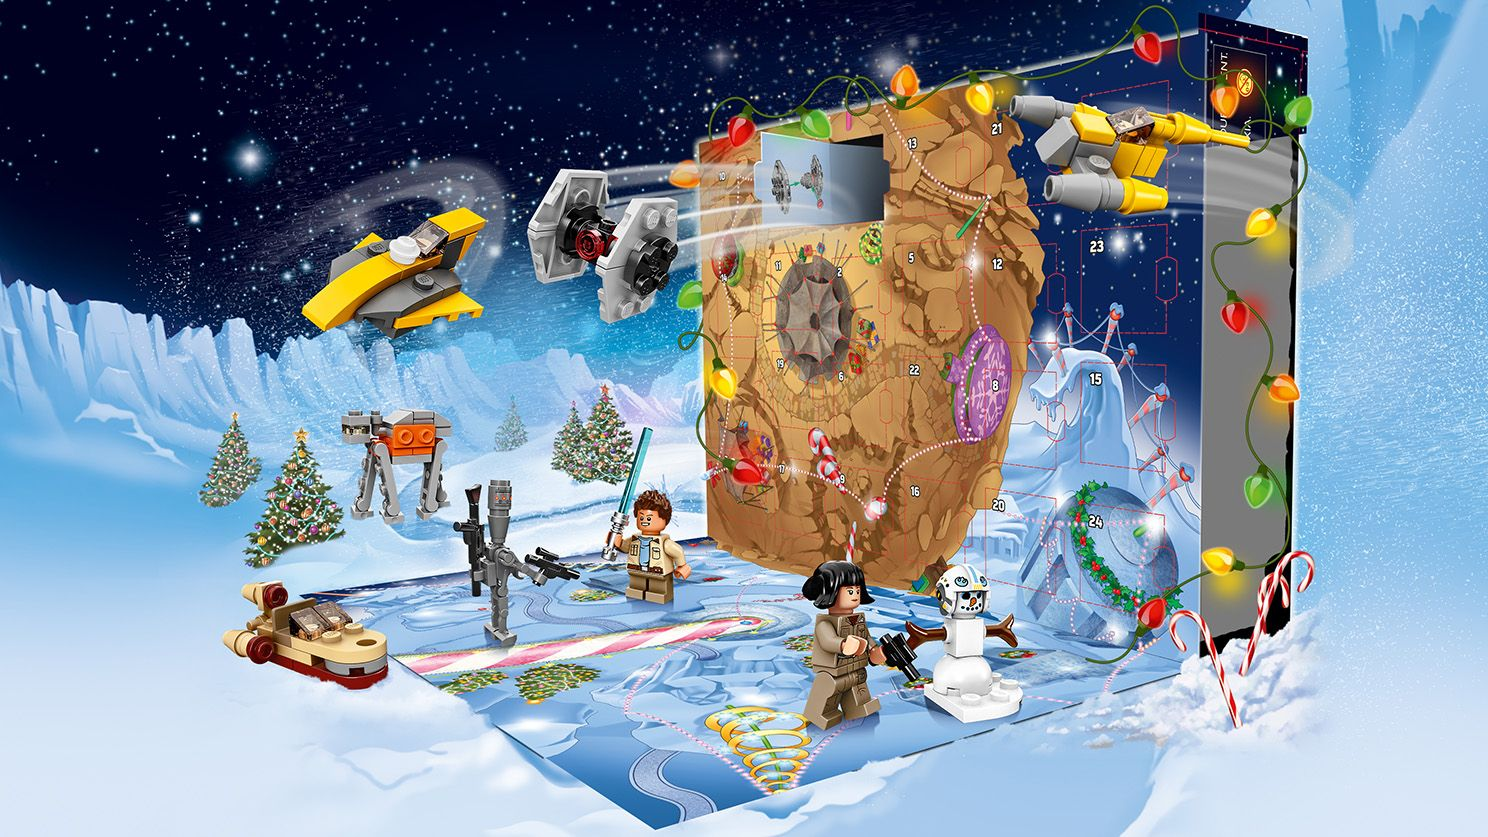 New Lego Star Wars Advent Calendar Out Now Diskingdom